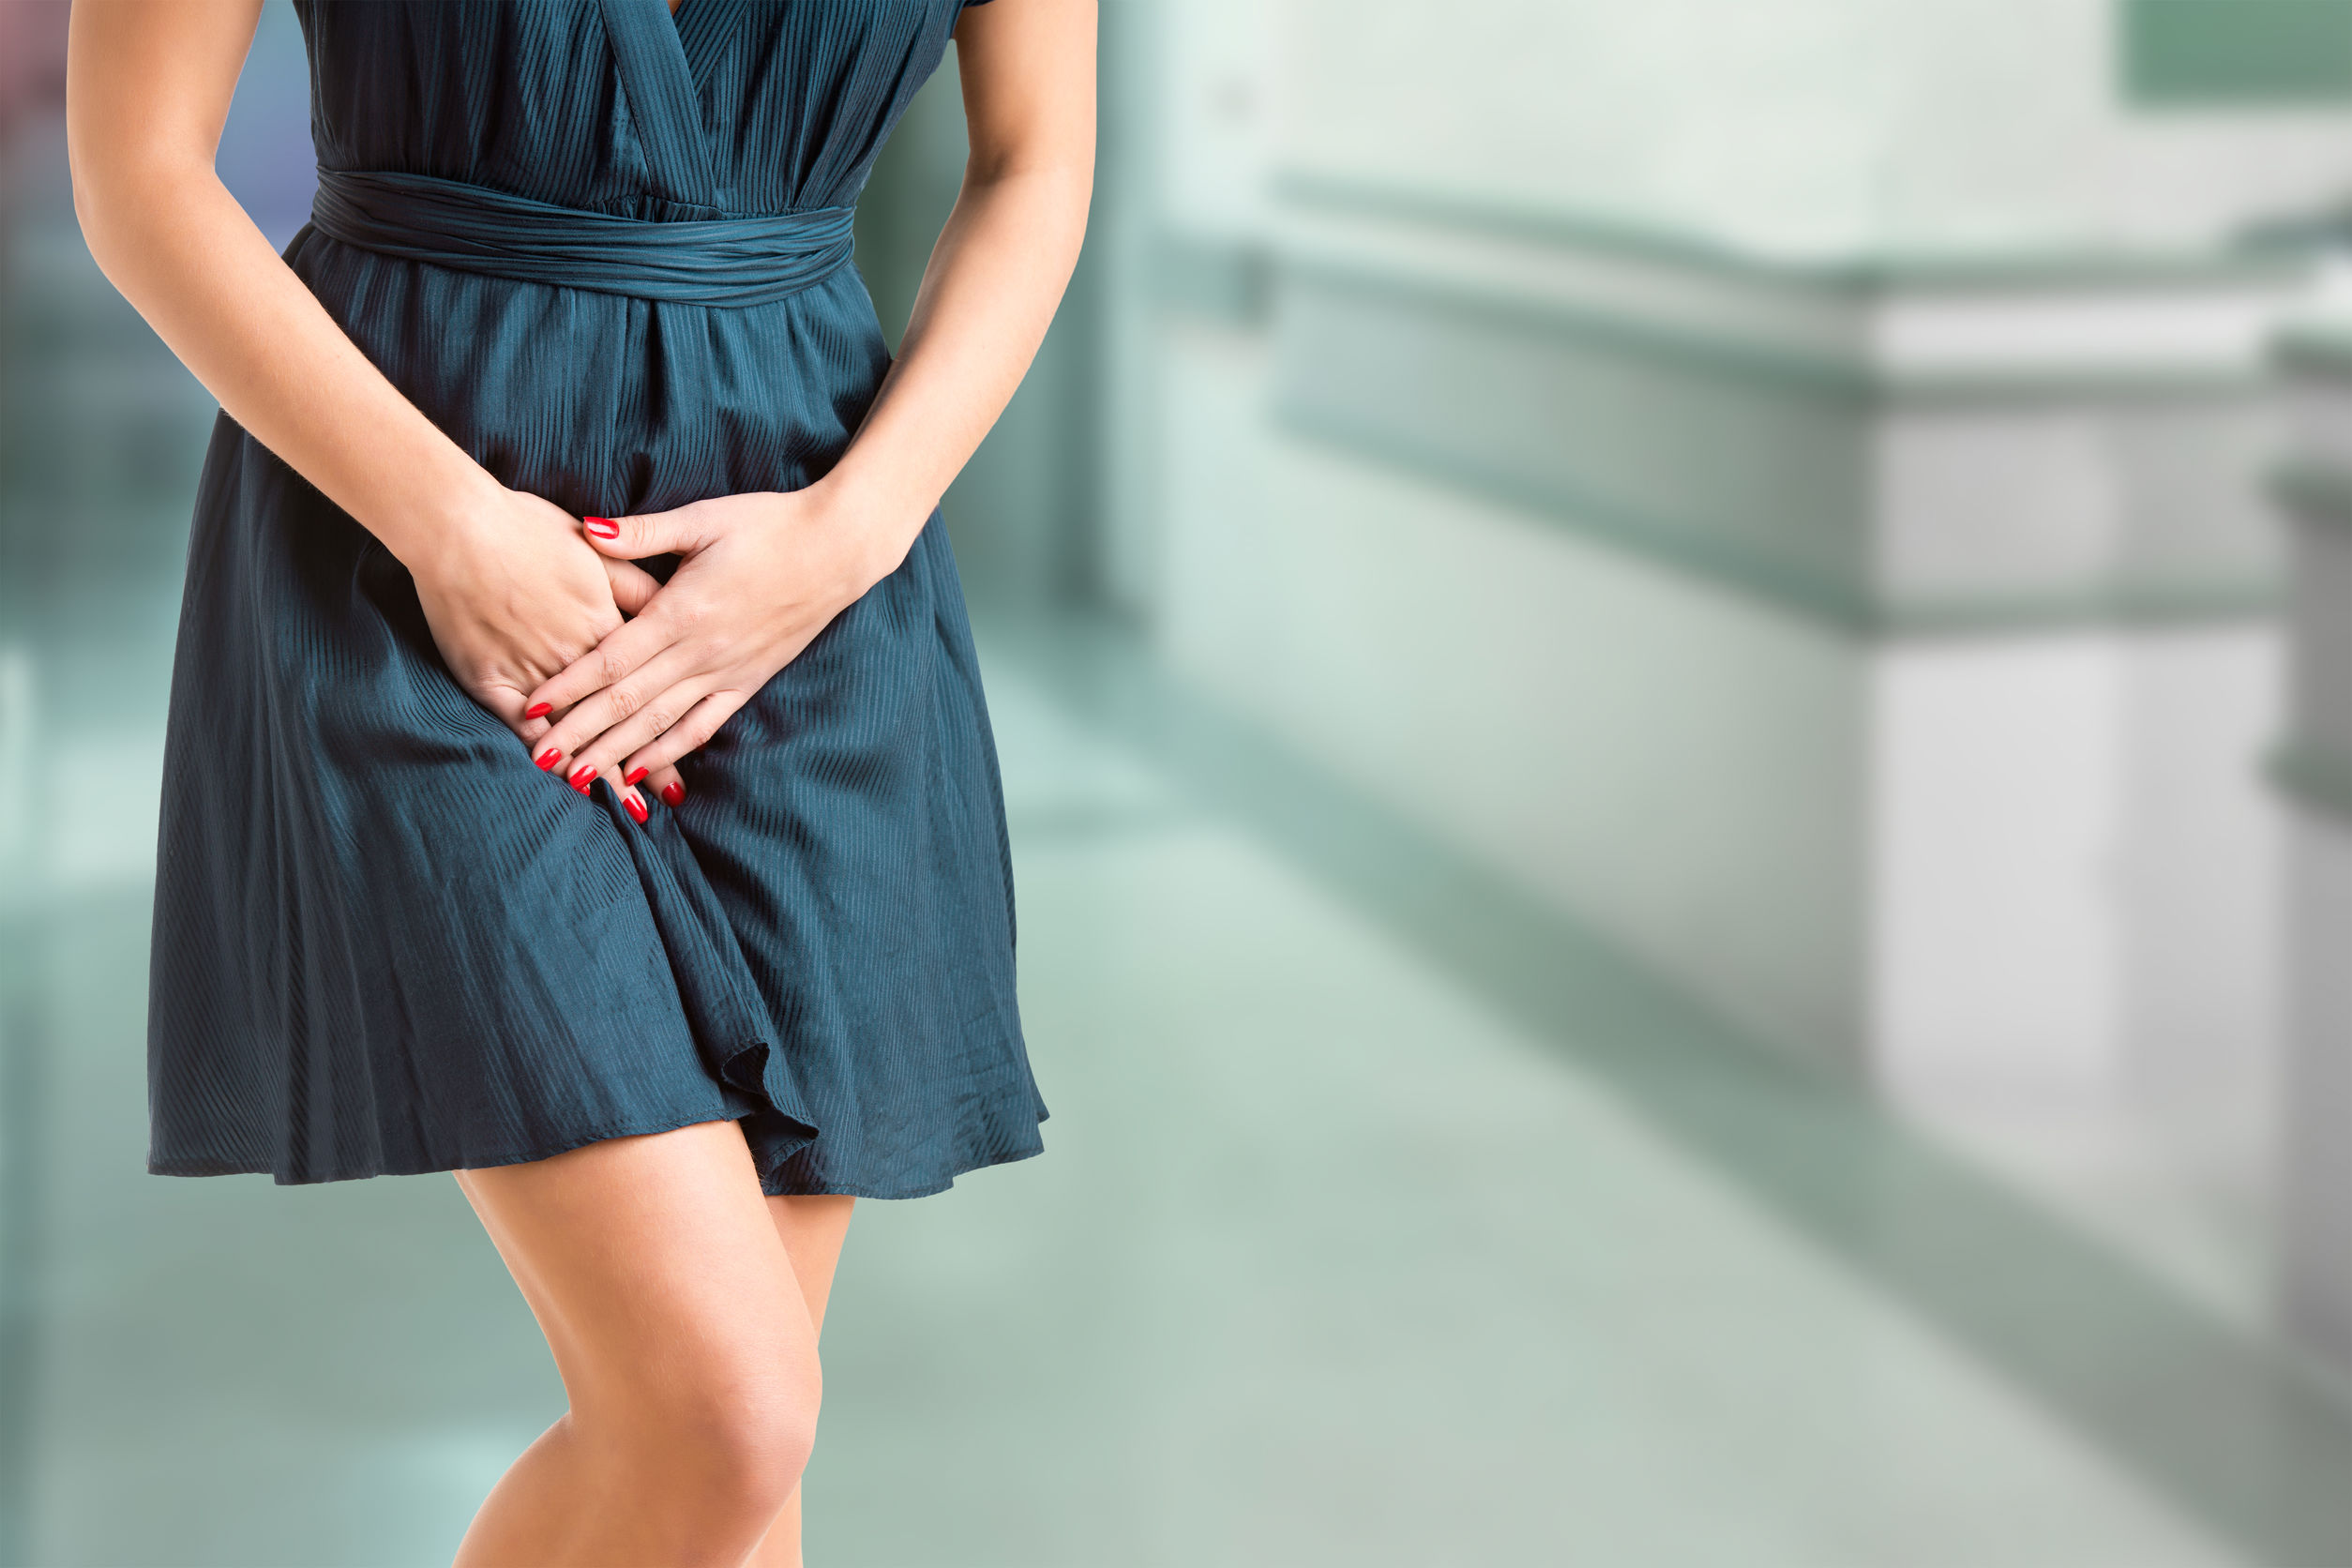 Cystitis: how to get rid of it in a few simple steps